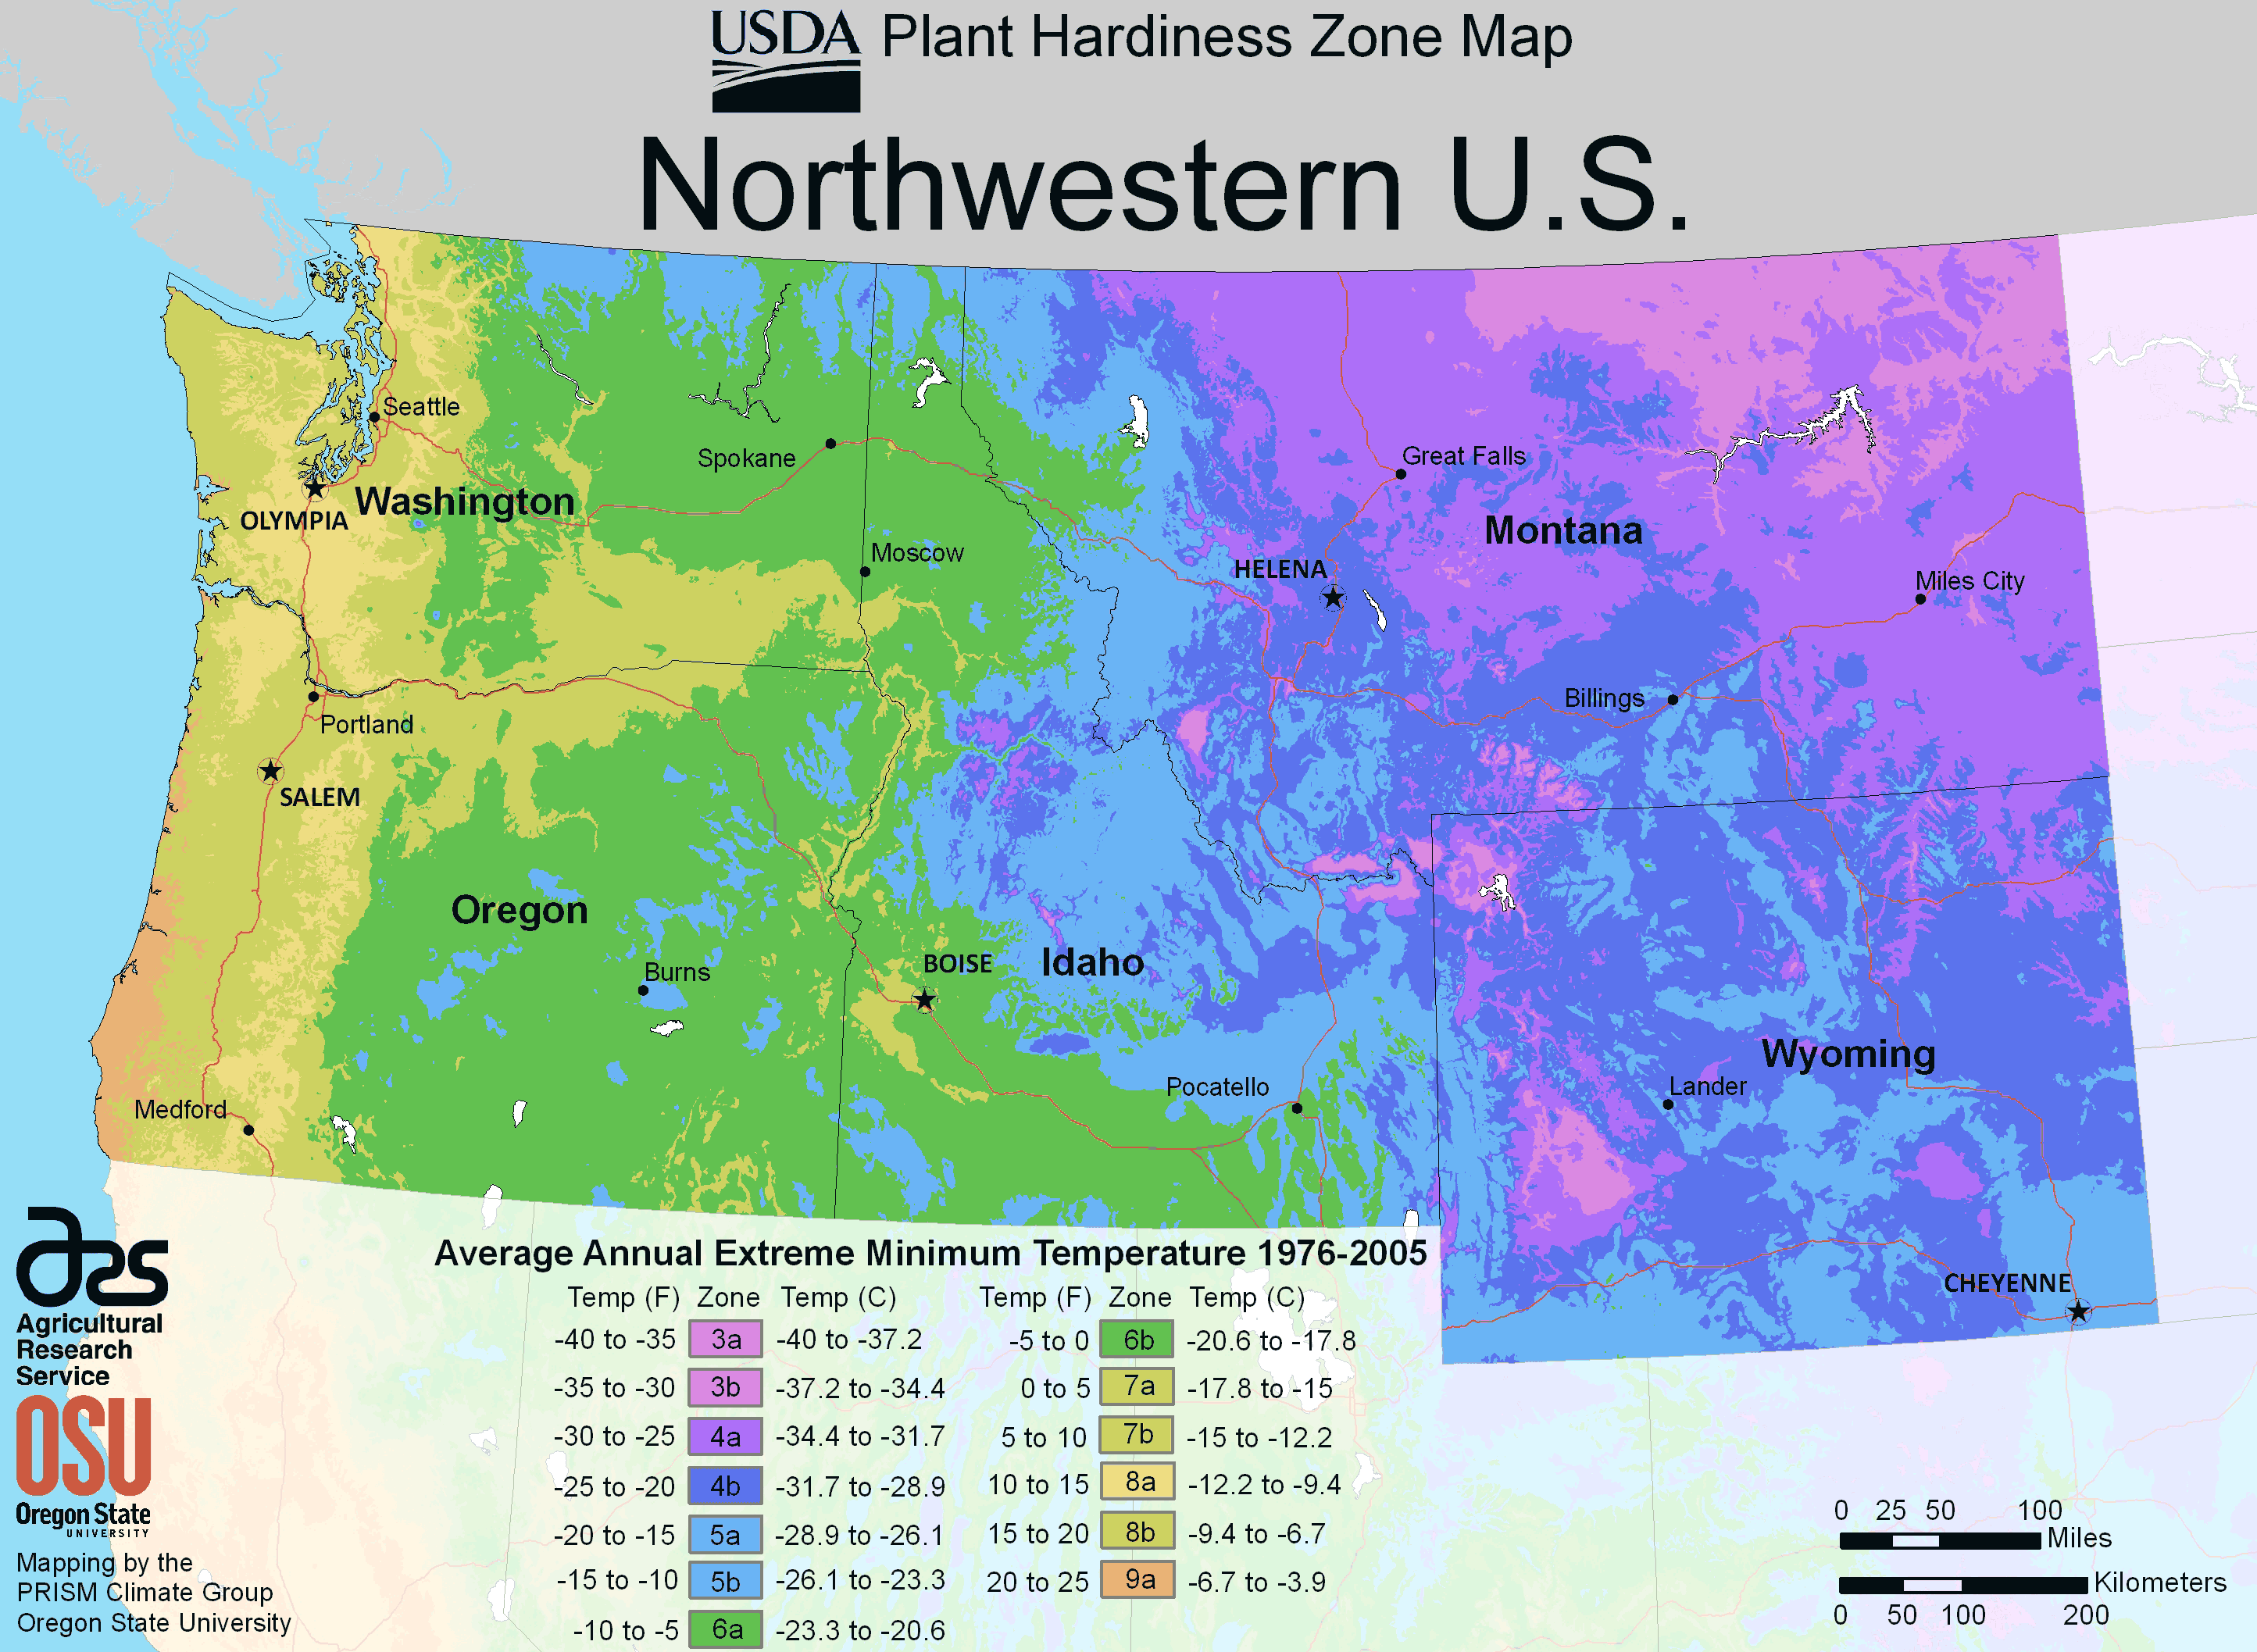 North West Us Plant Hardiness Zone Map Mapsofnet - Us-plant-hardiness-zone-map